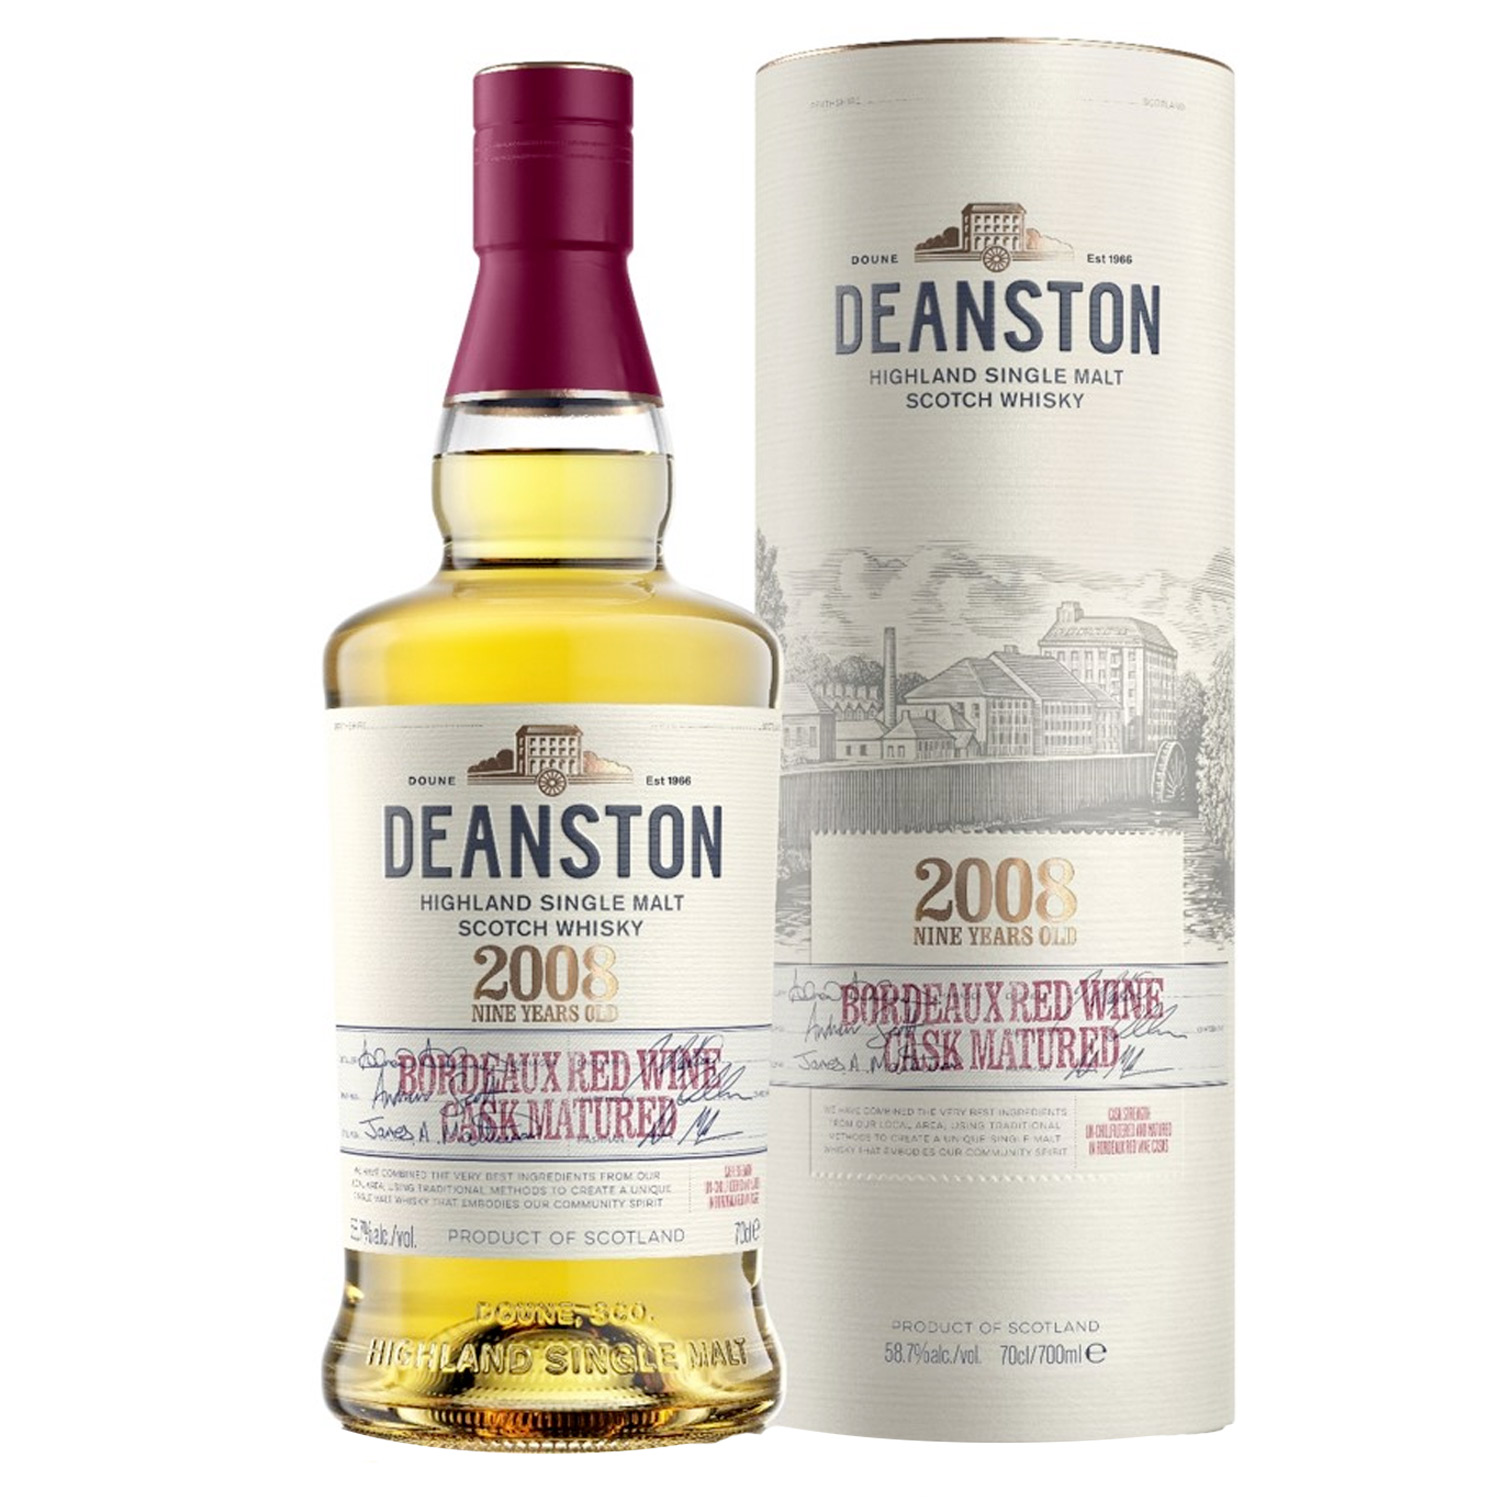 Whisky - Deanston - 2008 Bordeaux Red Wine Cask Maturated - 58,7° - 70 cl